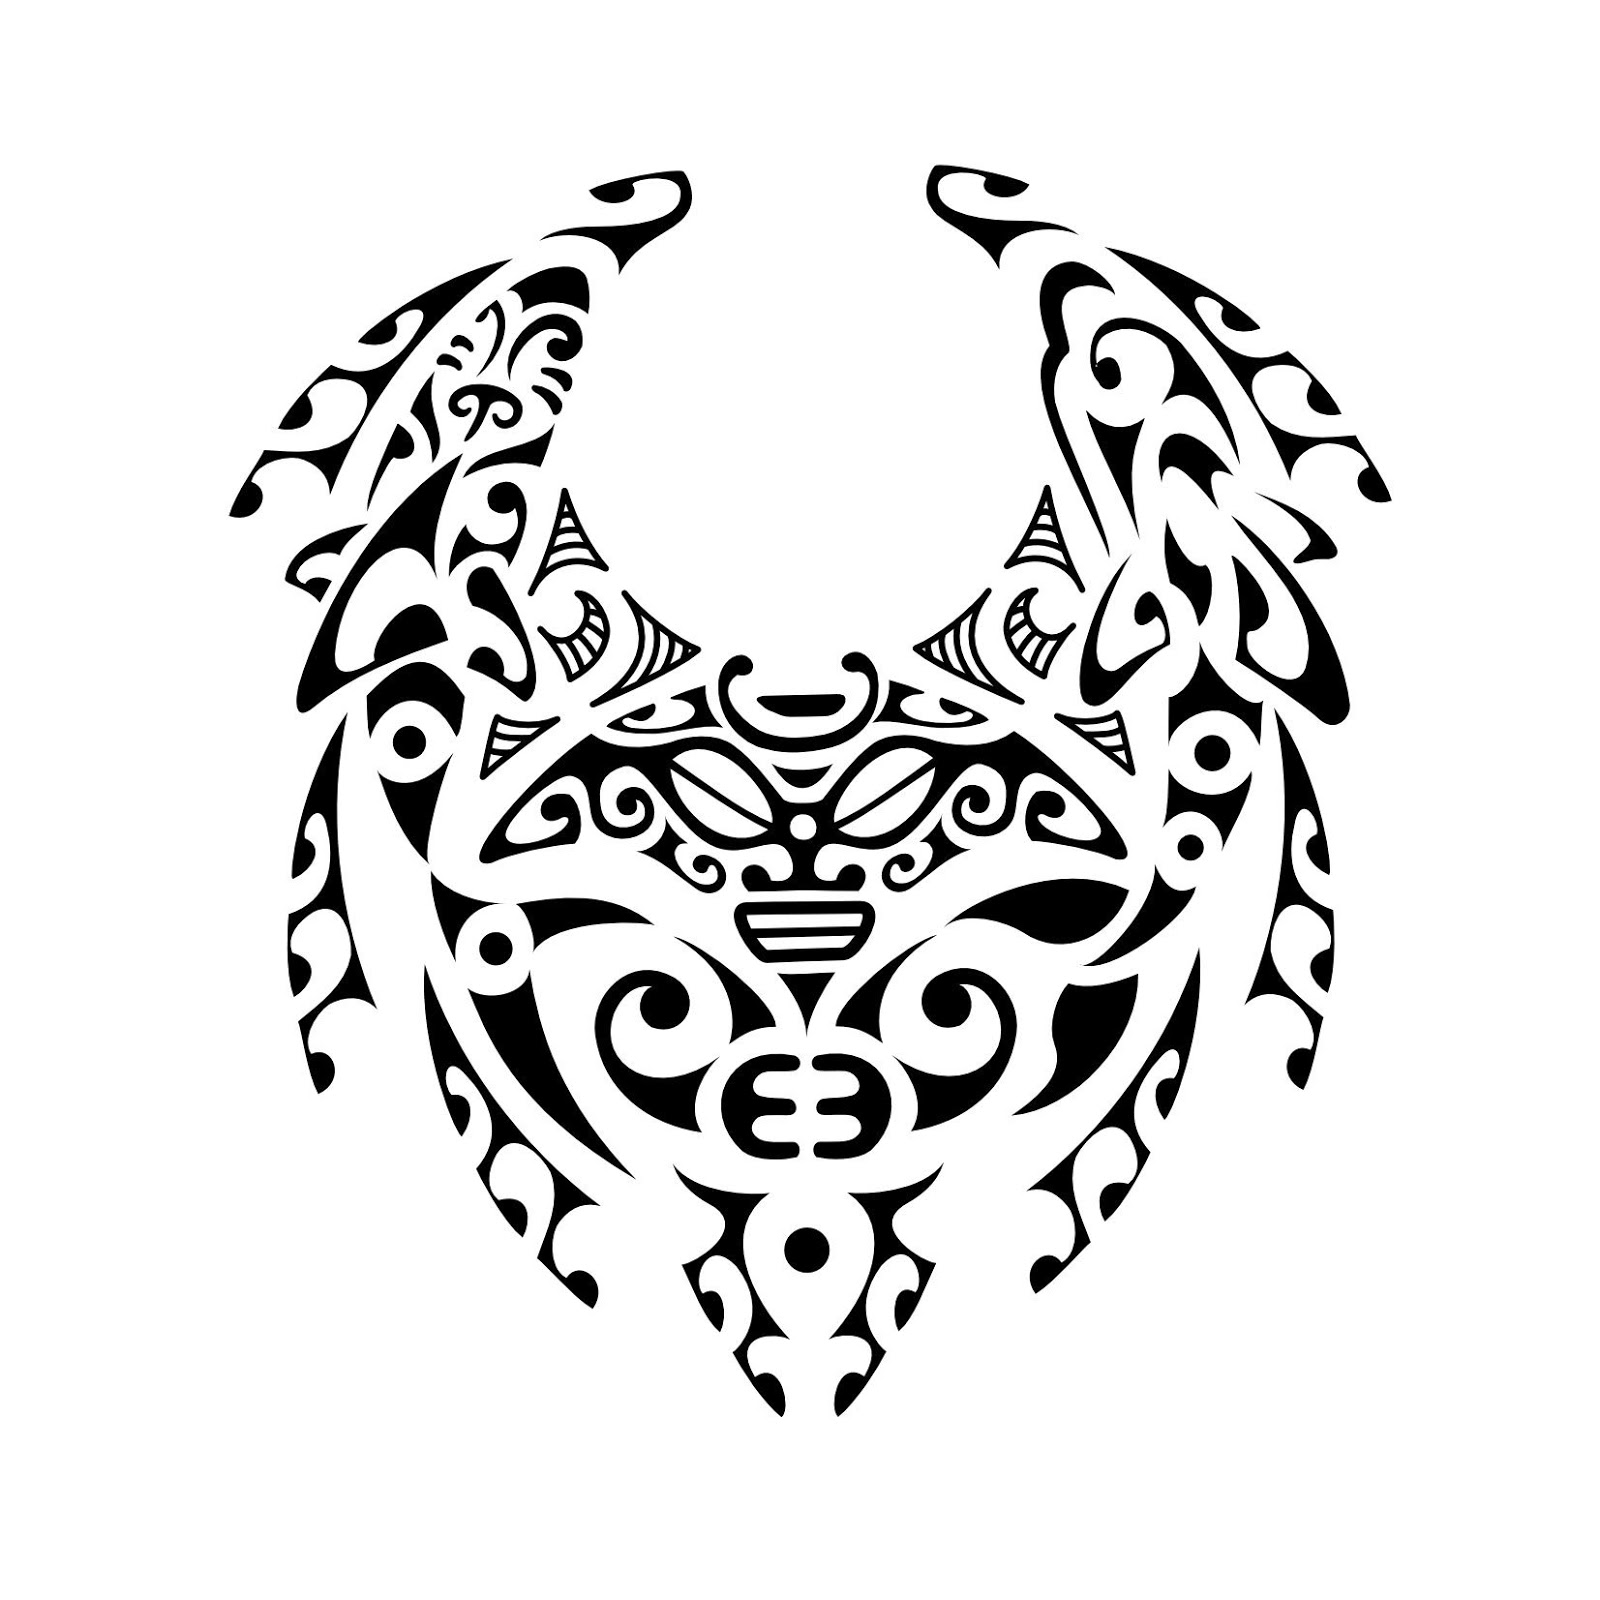 10 cool Bat tattoo design gallery - Tattoo Design Ideas Cool Ideas For A Bat on a cool llama, a cool cow, a cool cat, a cool pumpkin, a cool bird, a cool snake, a cool ball, a cool frog, a cool tiger,